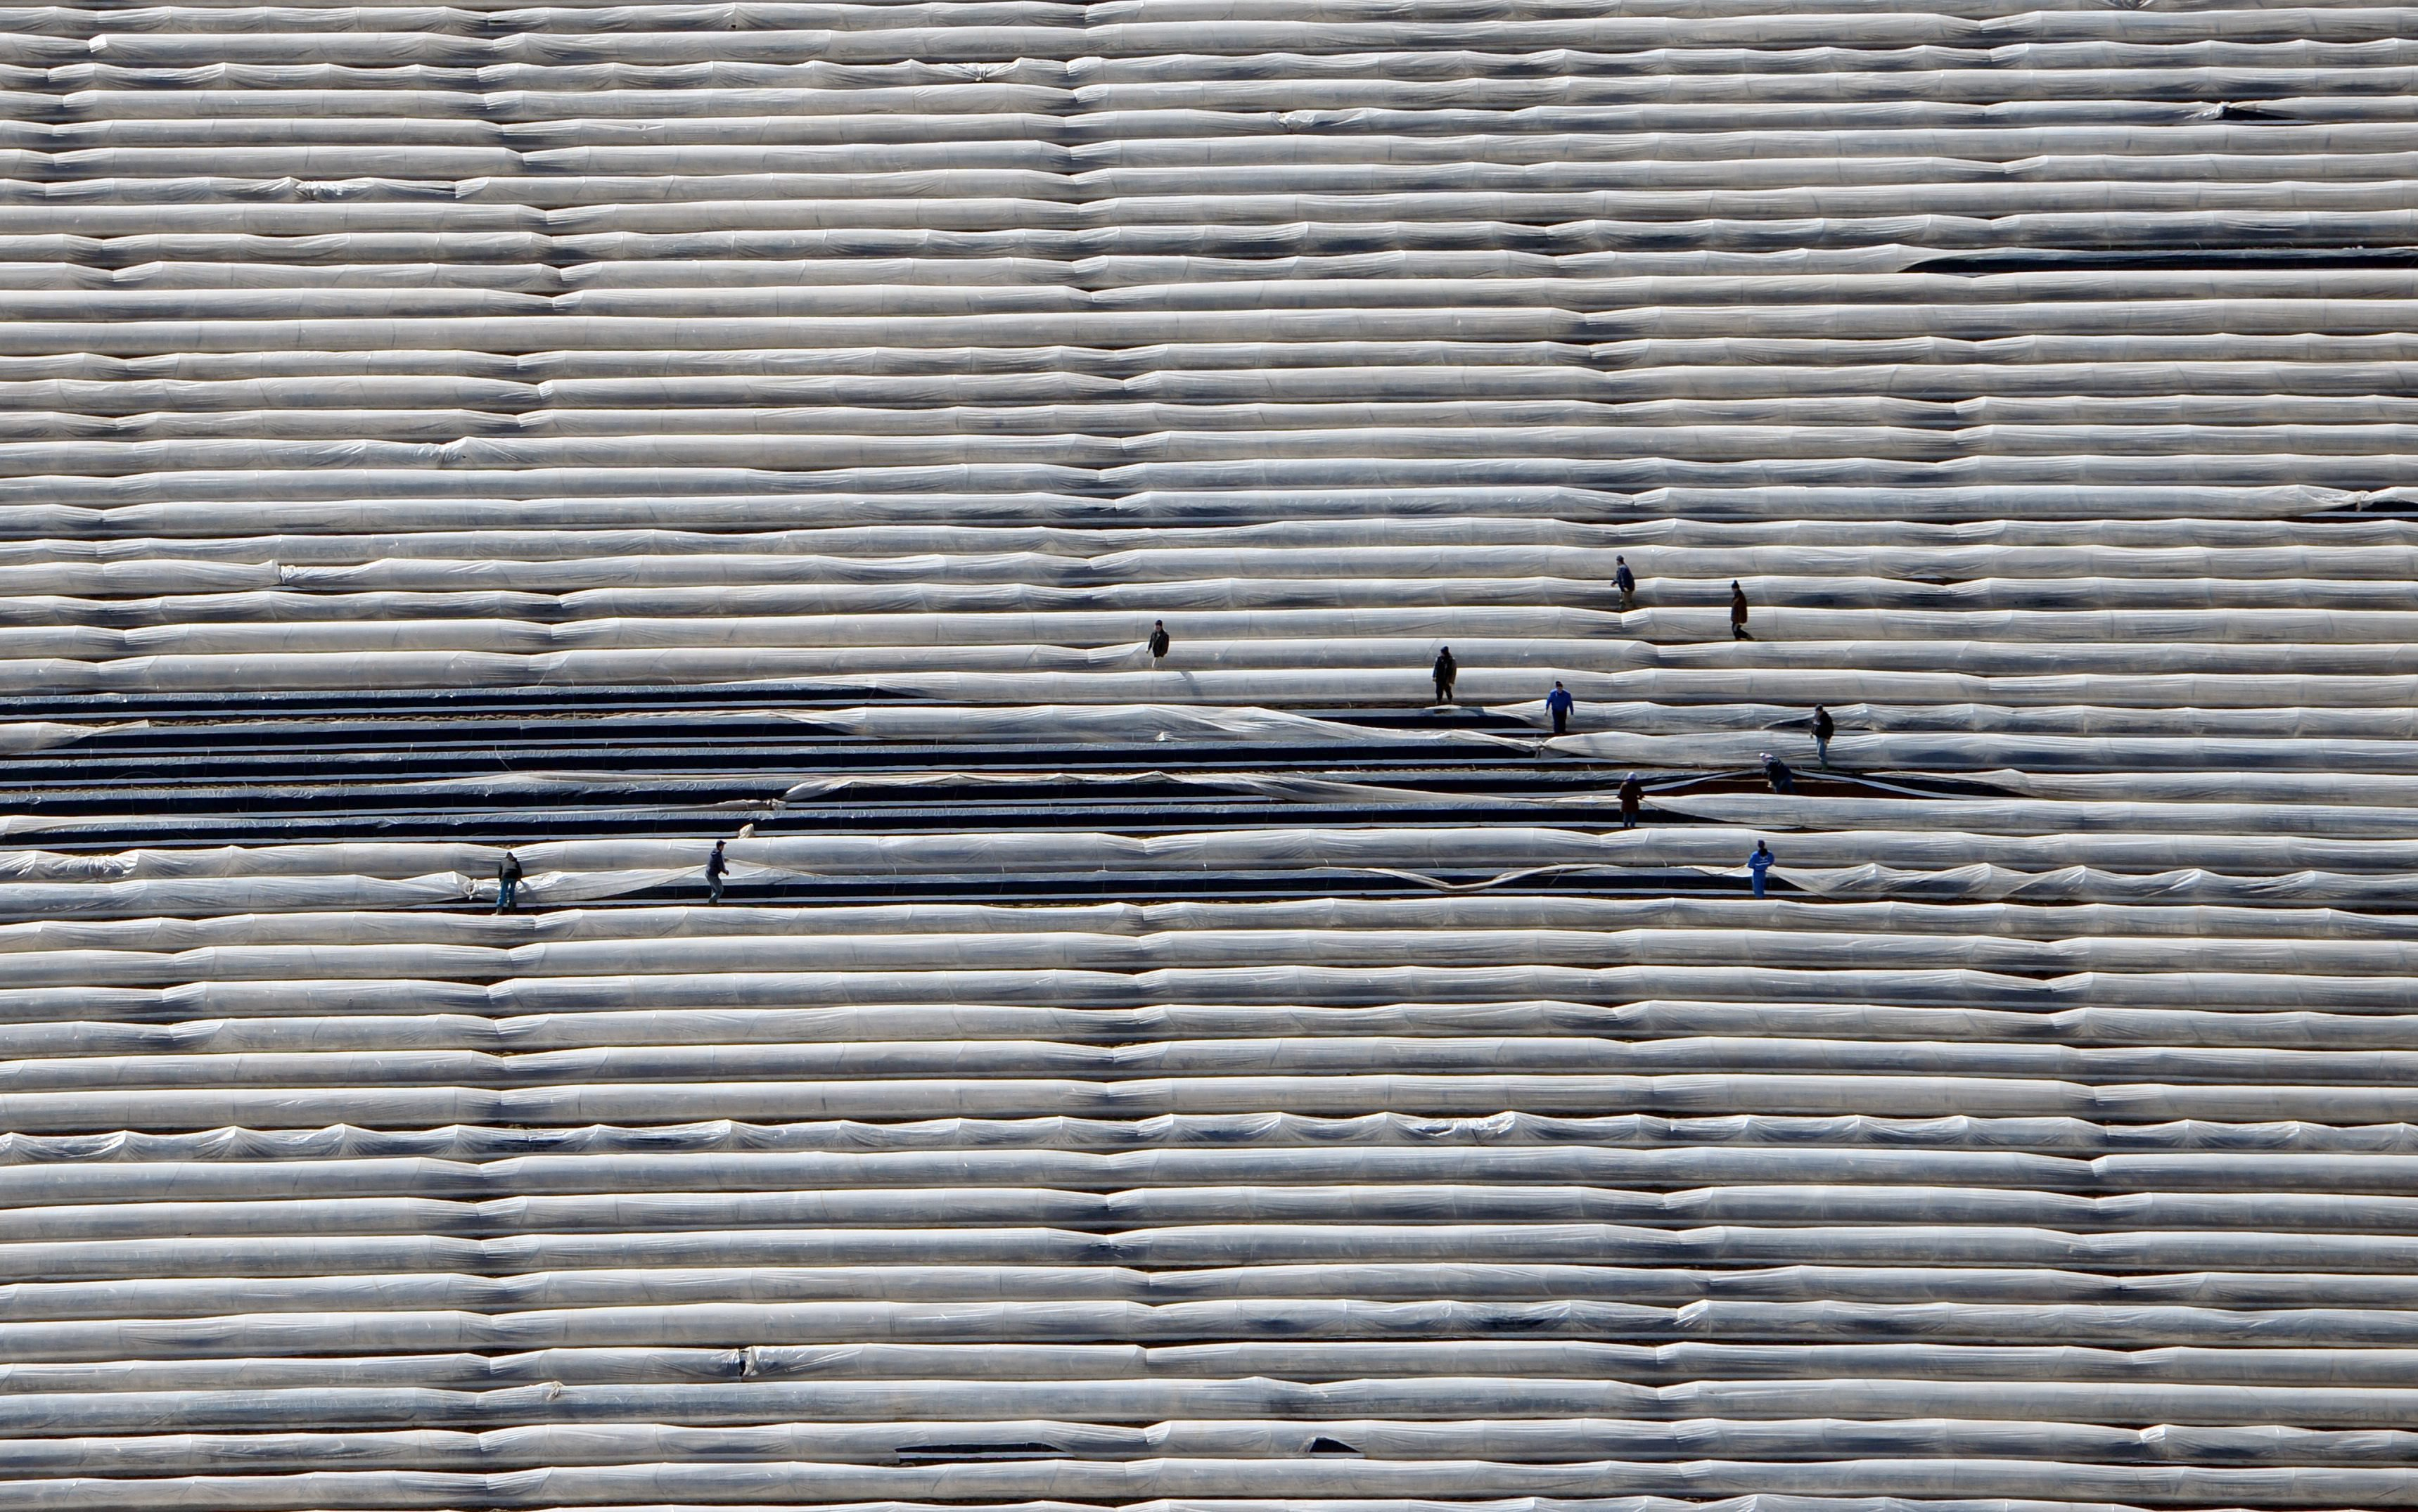 Mar. 20, 2014. An aerial view showing harvest workers uncovering rows of asparagus in a field at Kleistow asparagus farm near Beelitz,Germany.